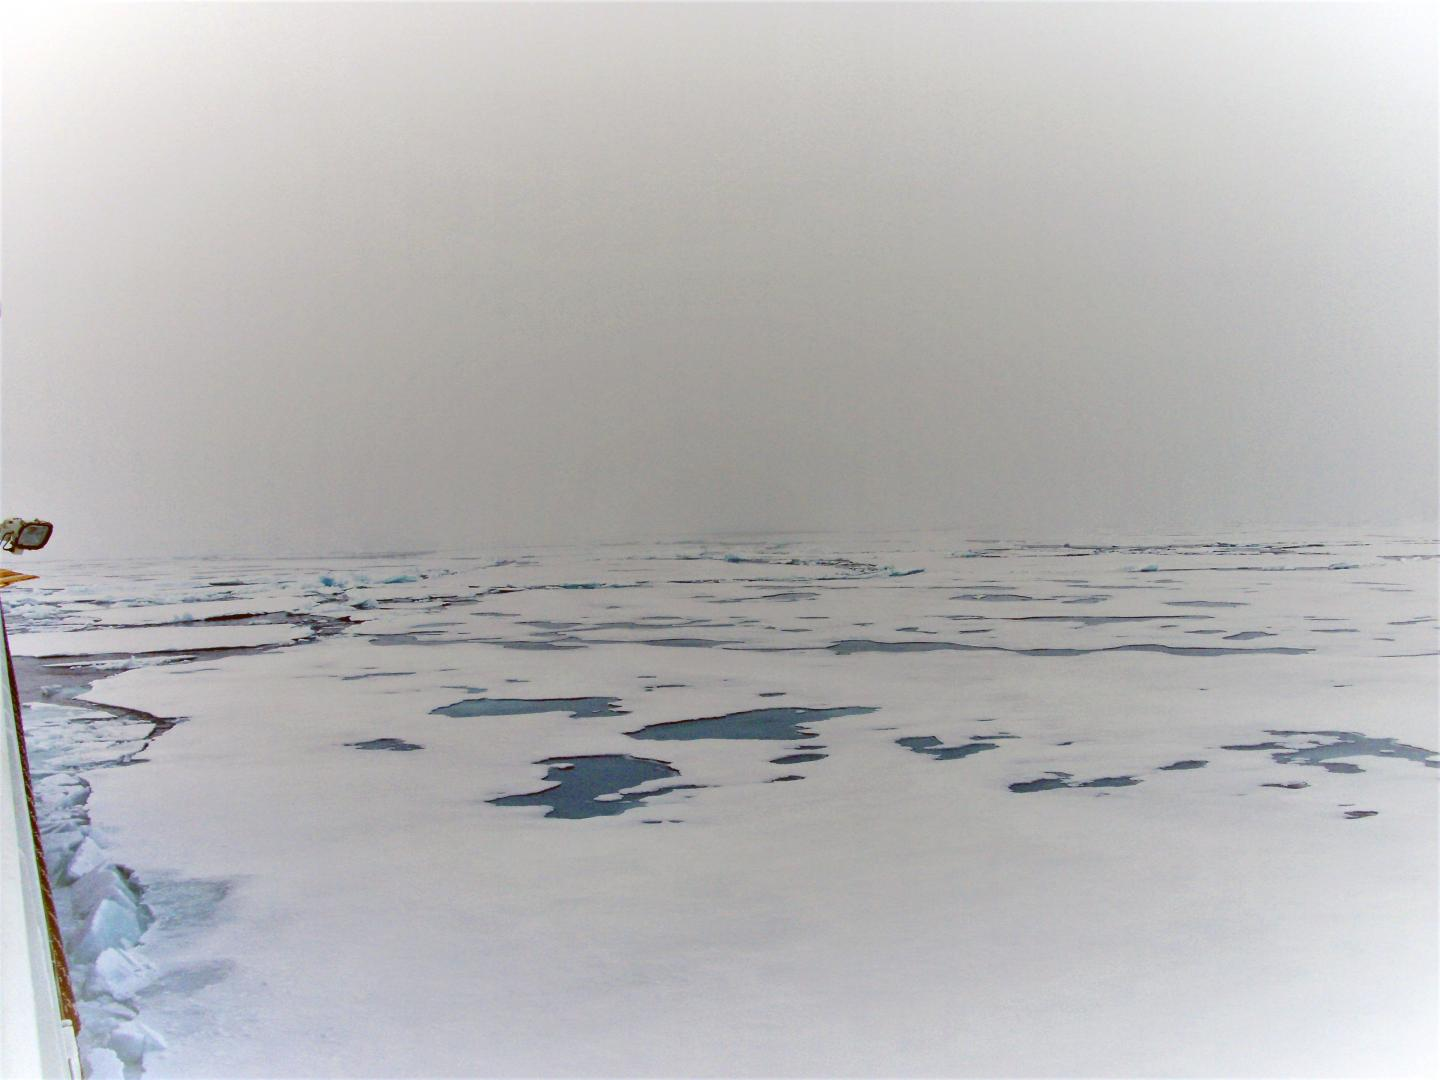 Inconvenient finding: Melting sea ice may lead to more life in the sea